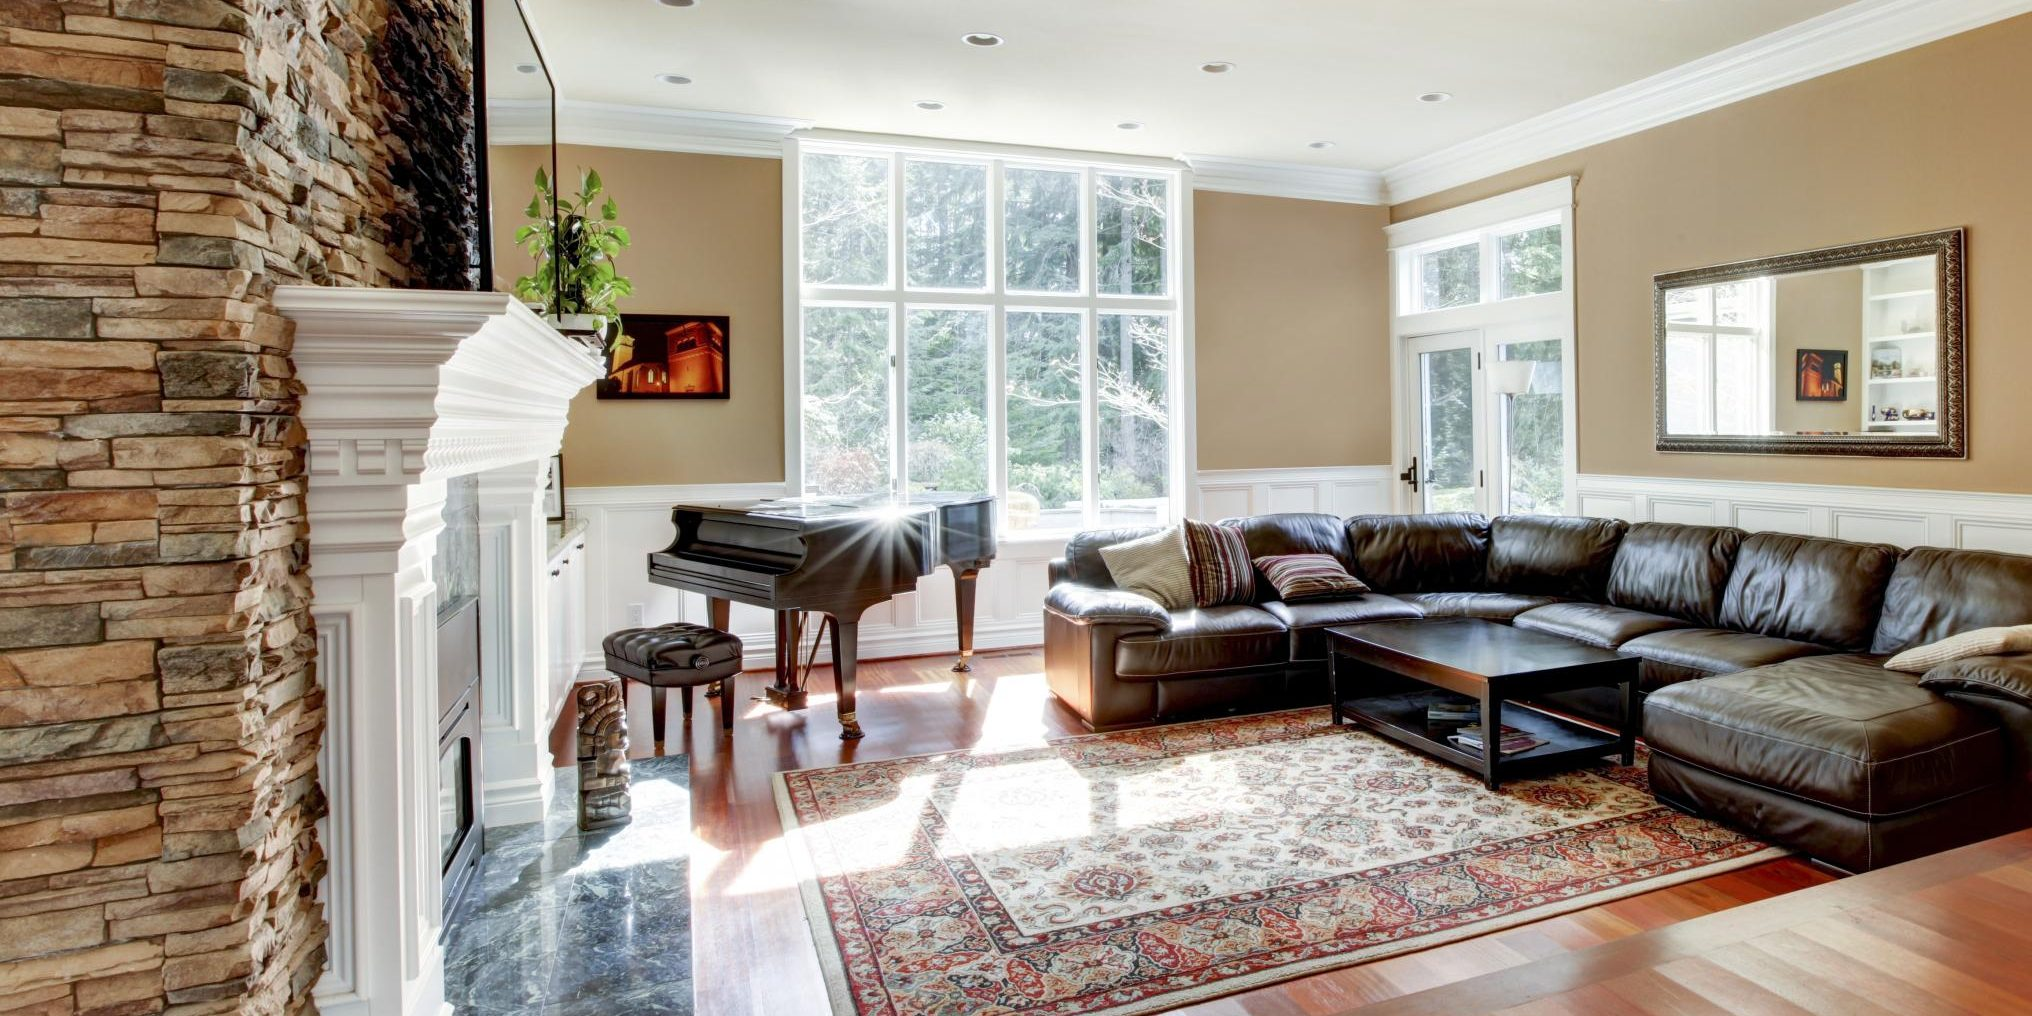 a living room with carpet and sofa